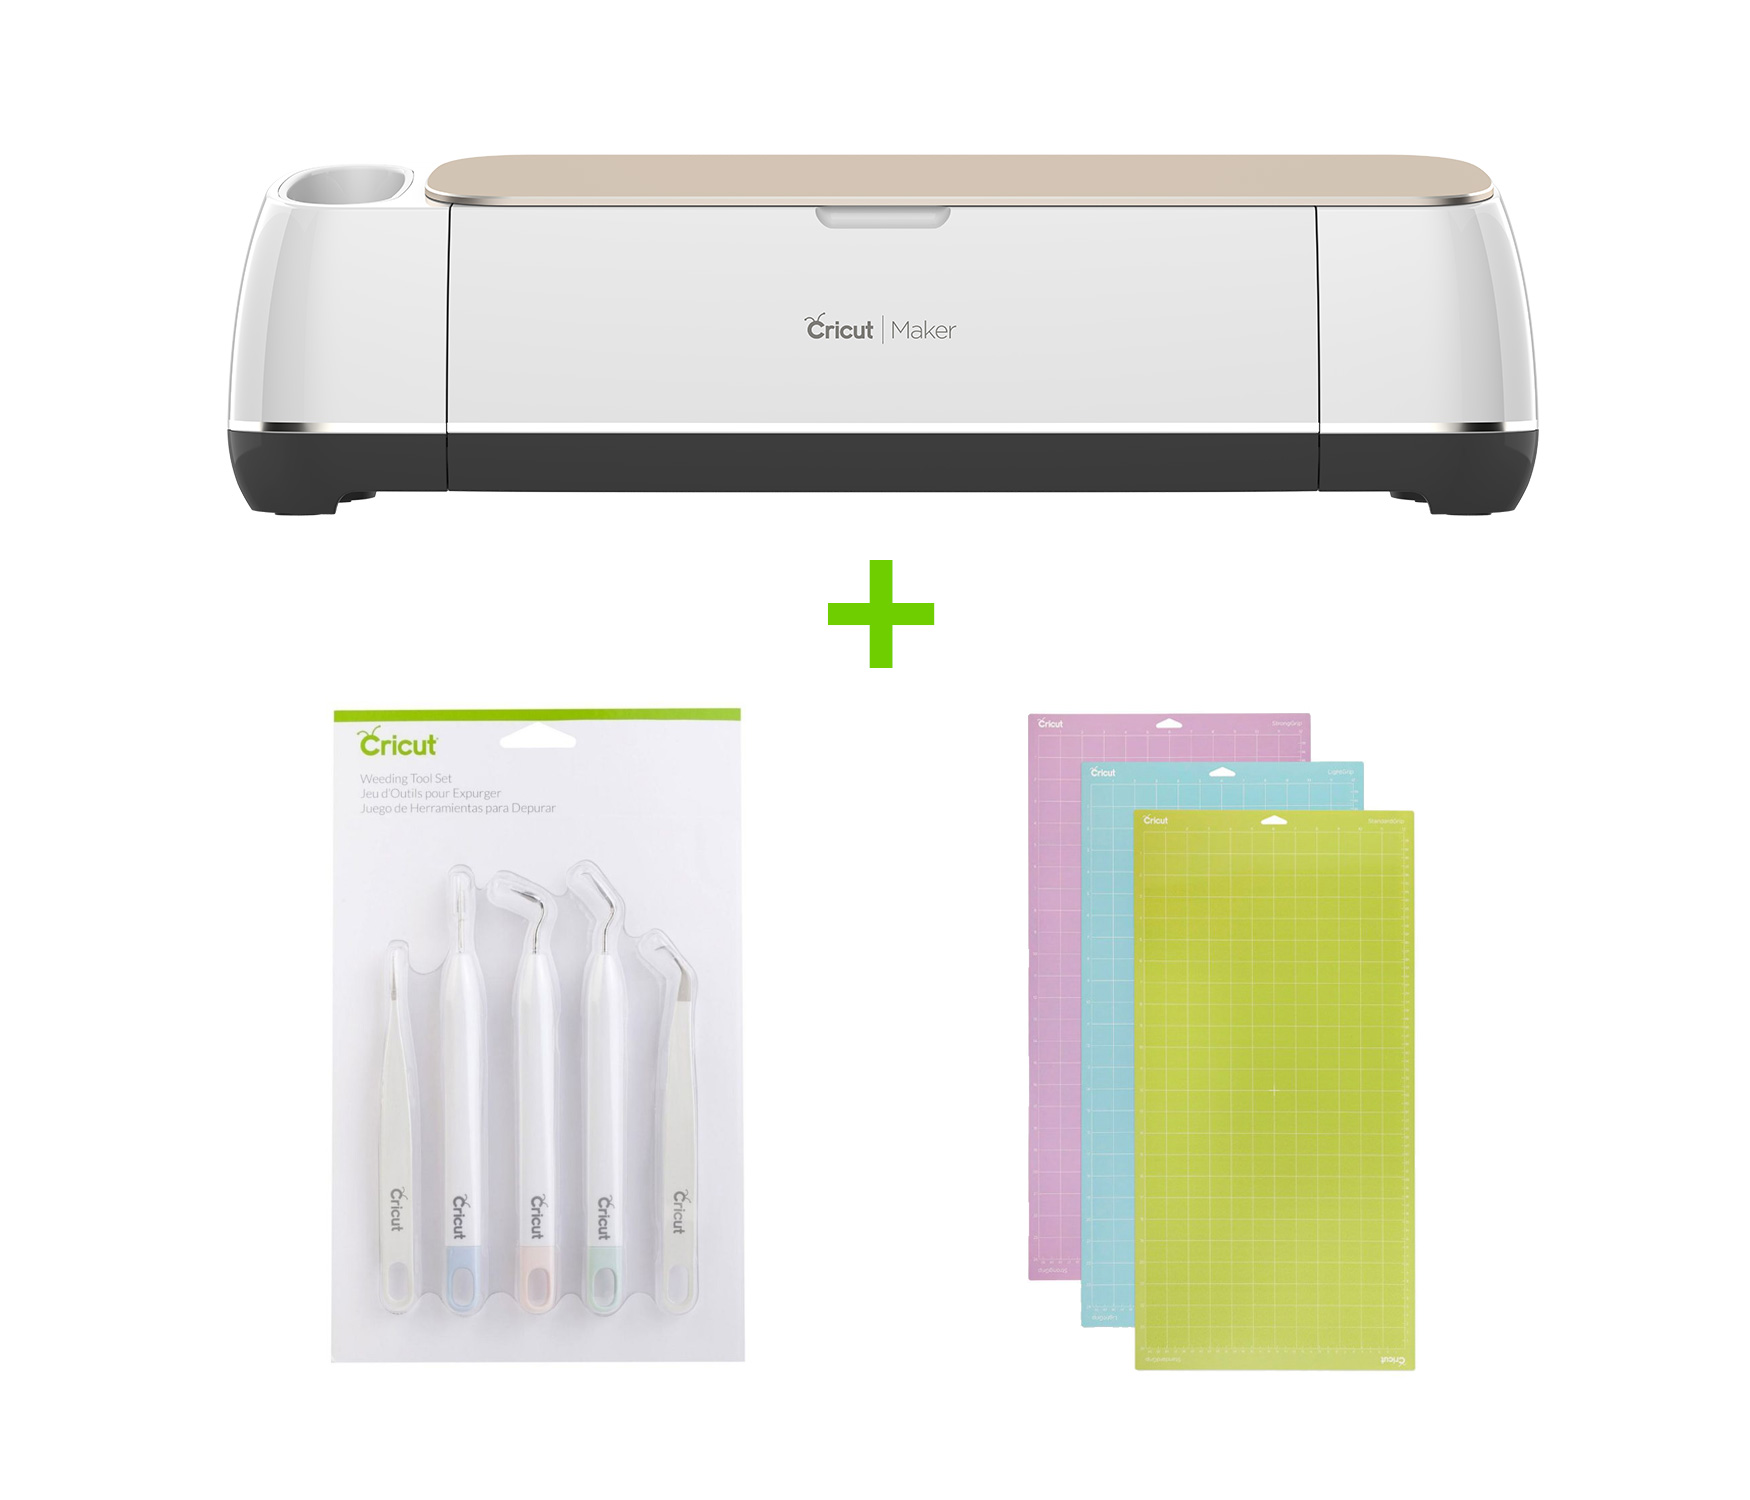 CR2007002-SKSV21B Cricut maker kit San Valentino